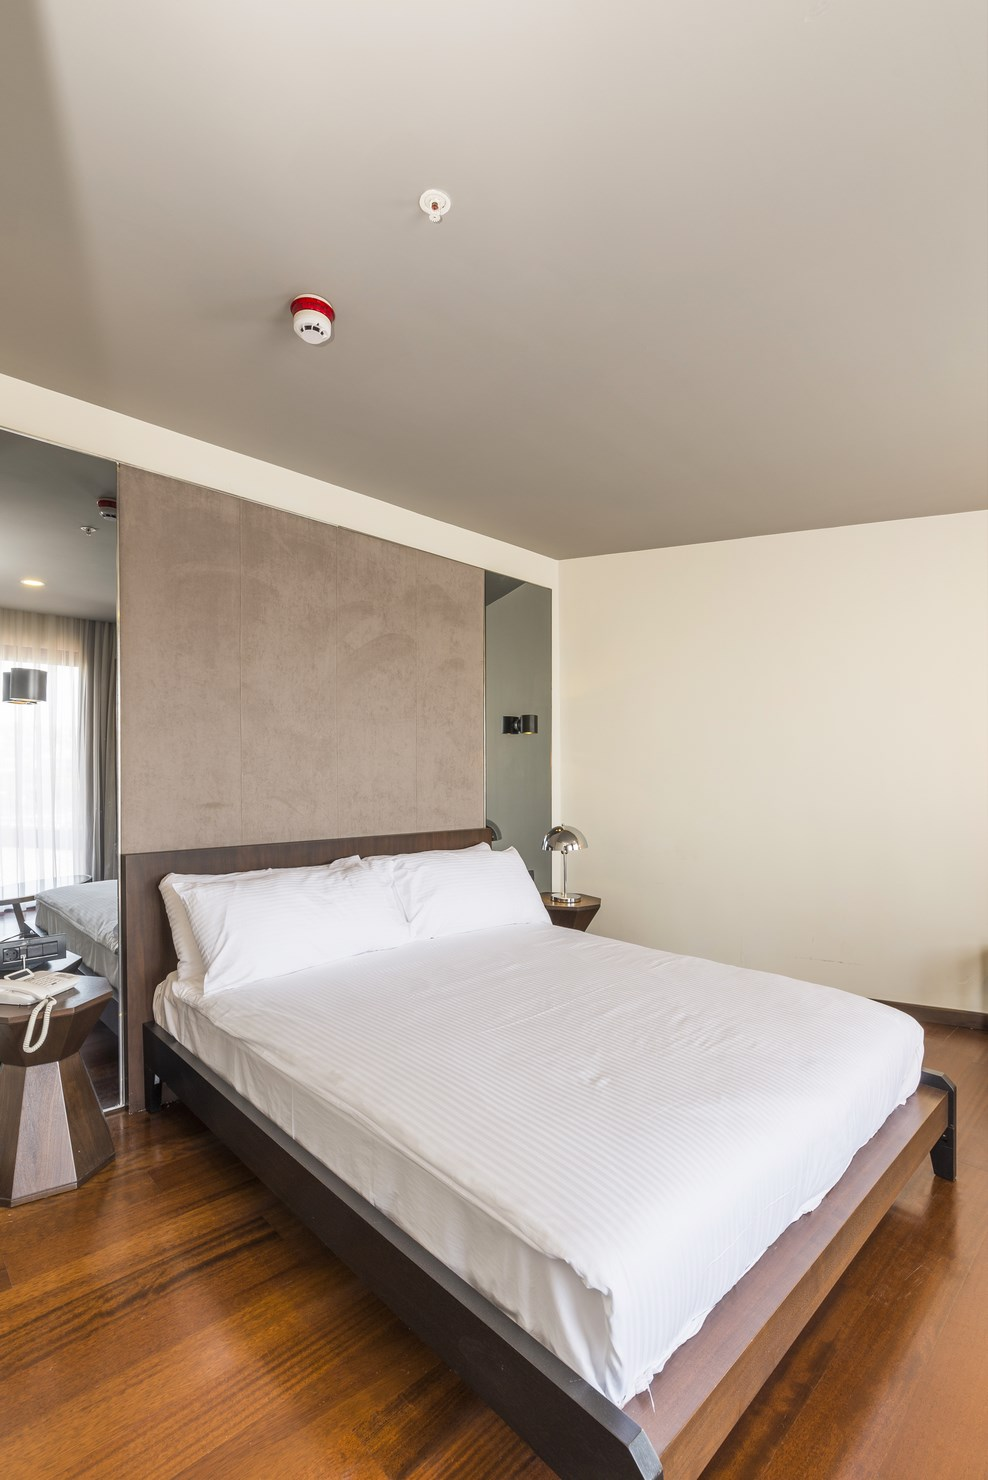 FAMILY PACKAGE - 3 Rooms with Terrace and Sea View + Kitchen